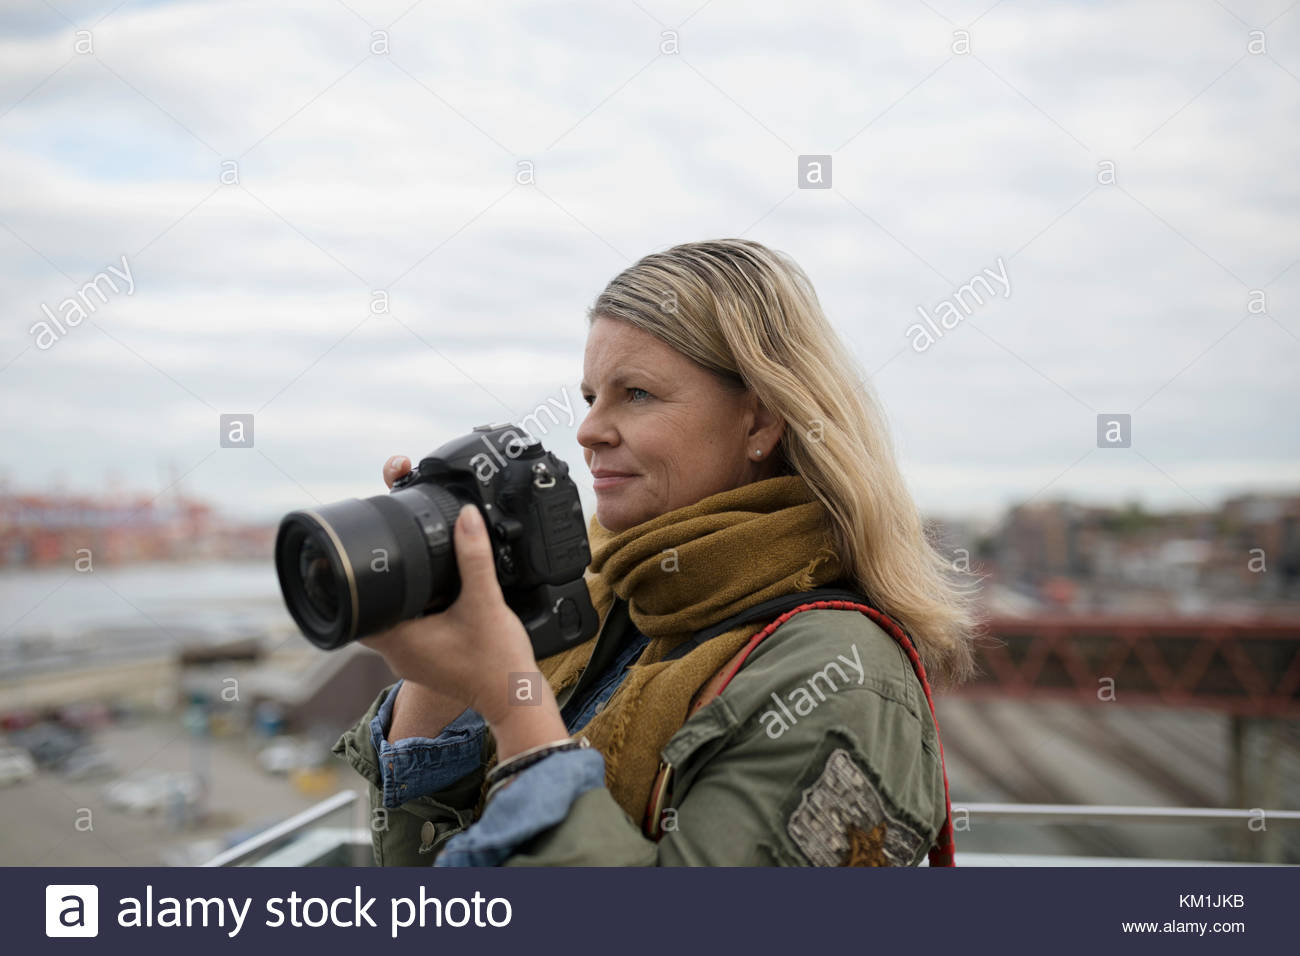 Mature woman photographing with digital camera - Stock Image